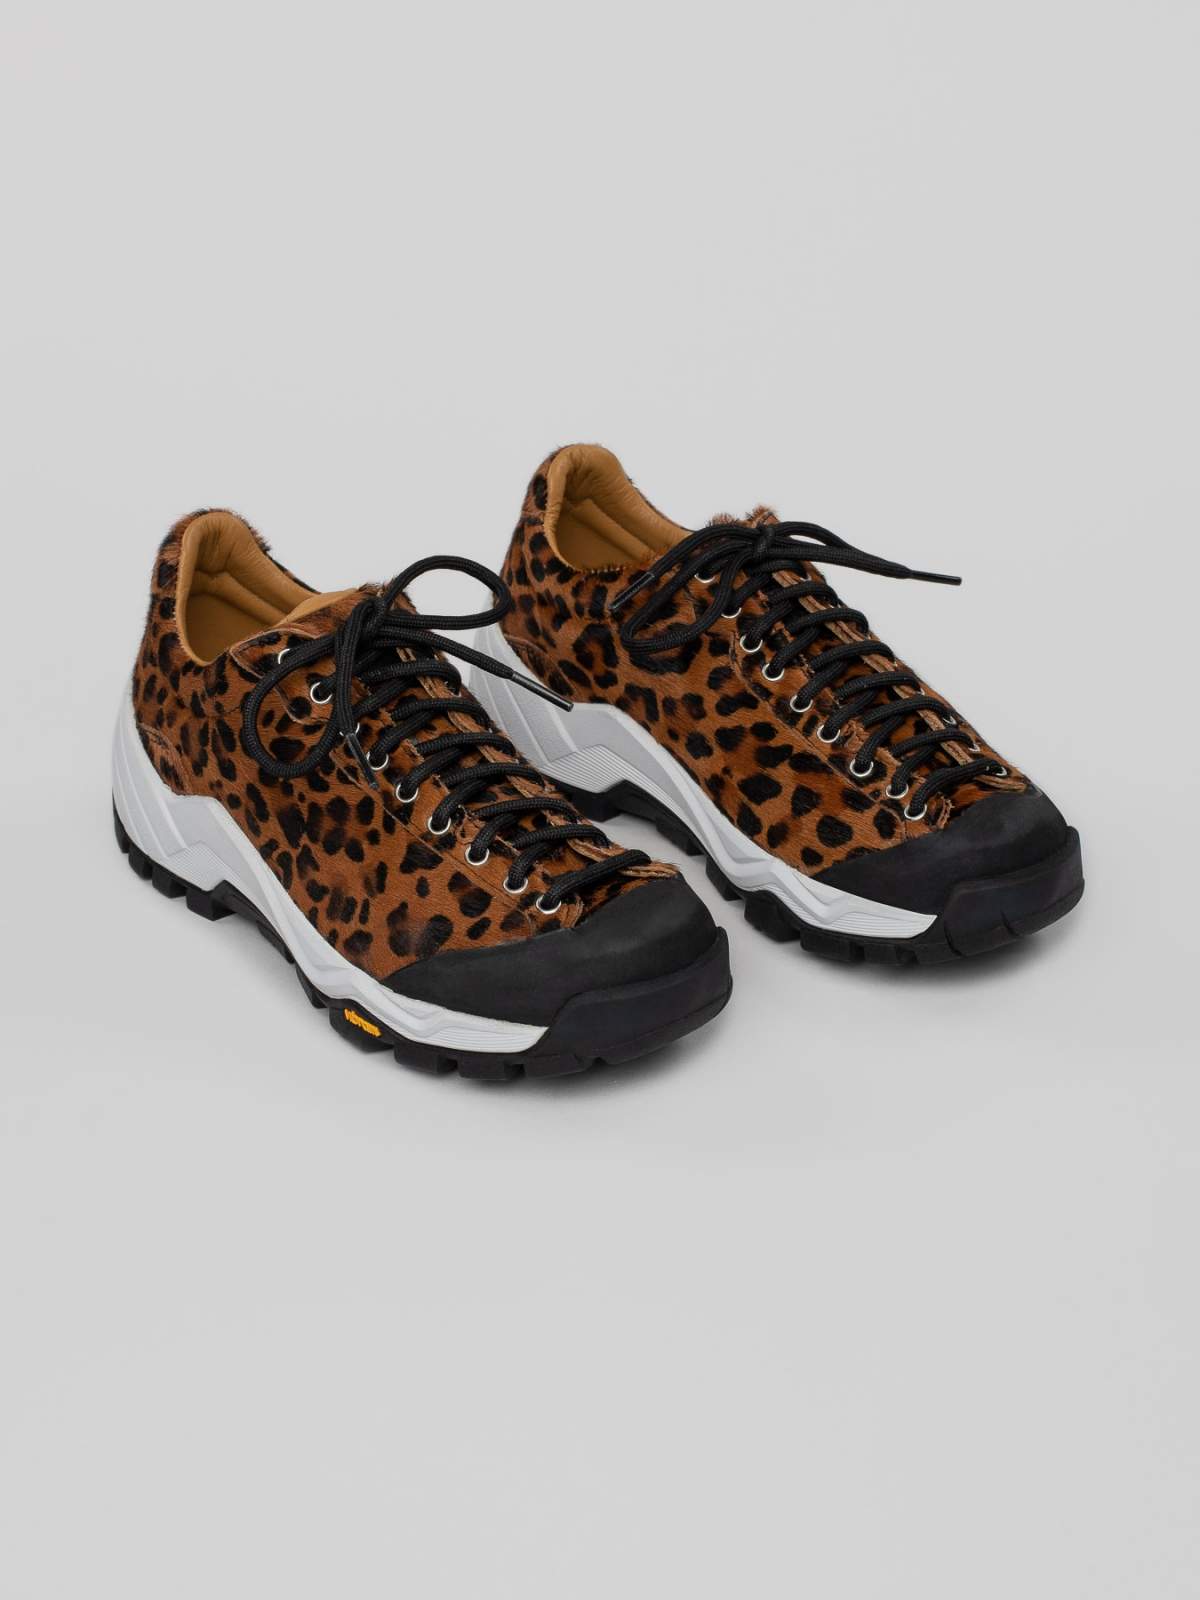 Movida Dark Leopard Hiker shoe from Diemme